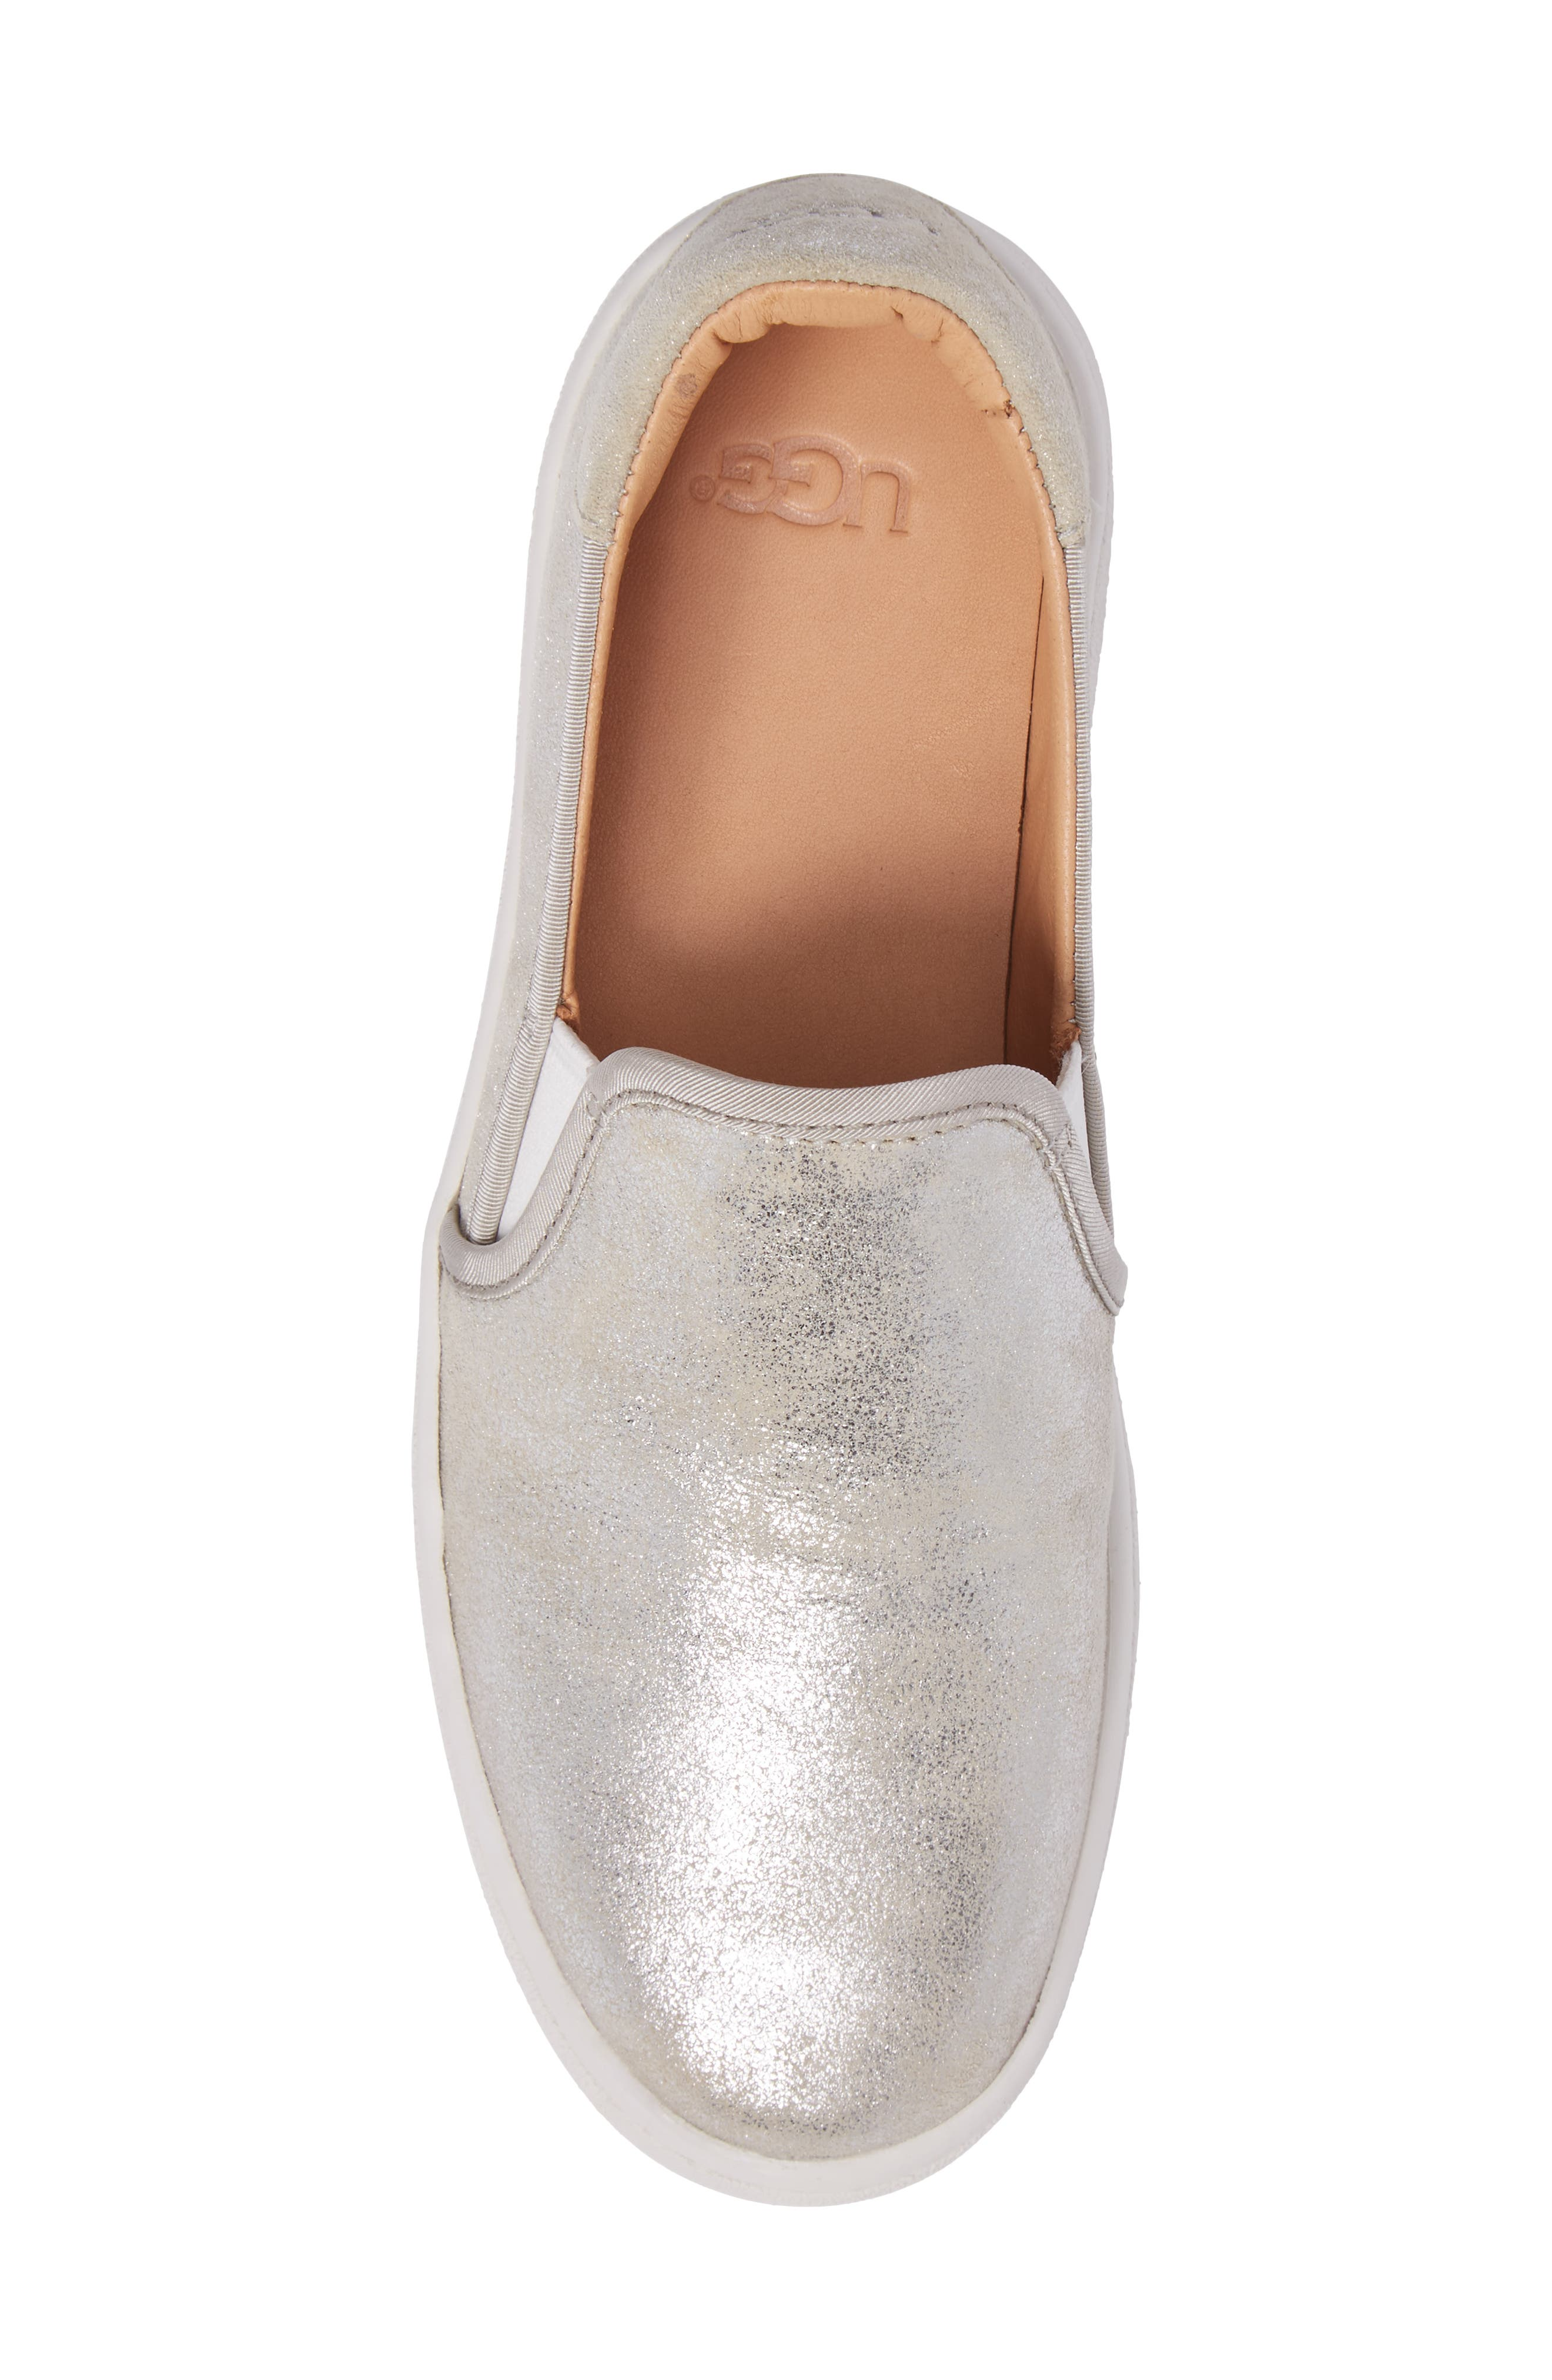 Cas Stardust Slip-On Sneaker,                             Alternate thumbnail 5, color,                             Silver Leather